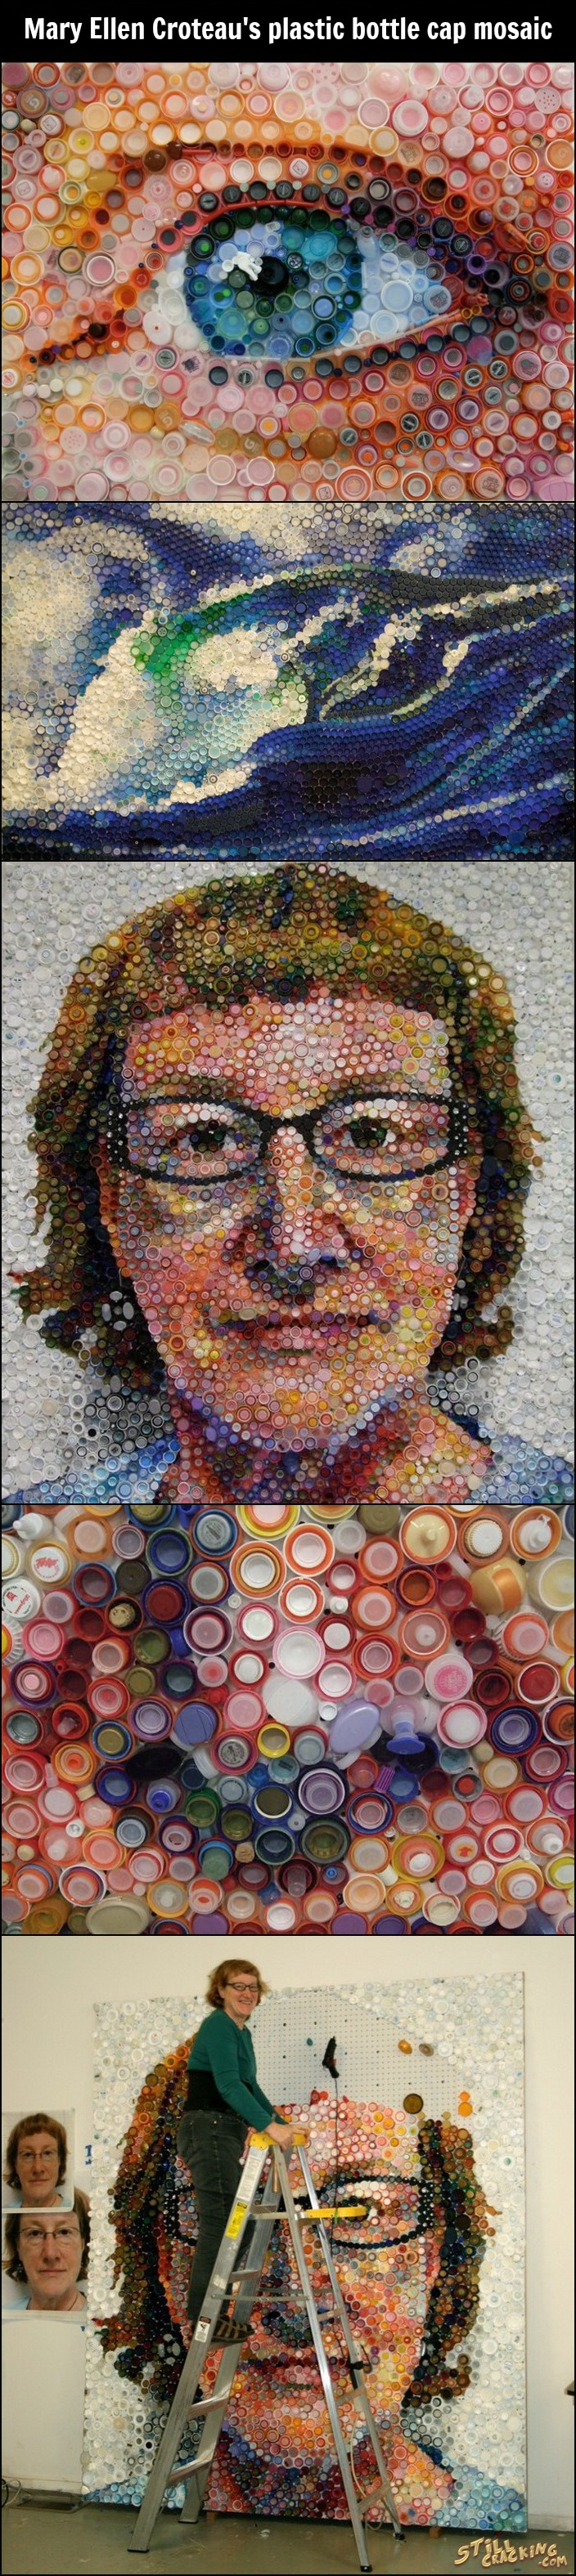 art, plastic bottle caps mosaic